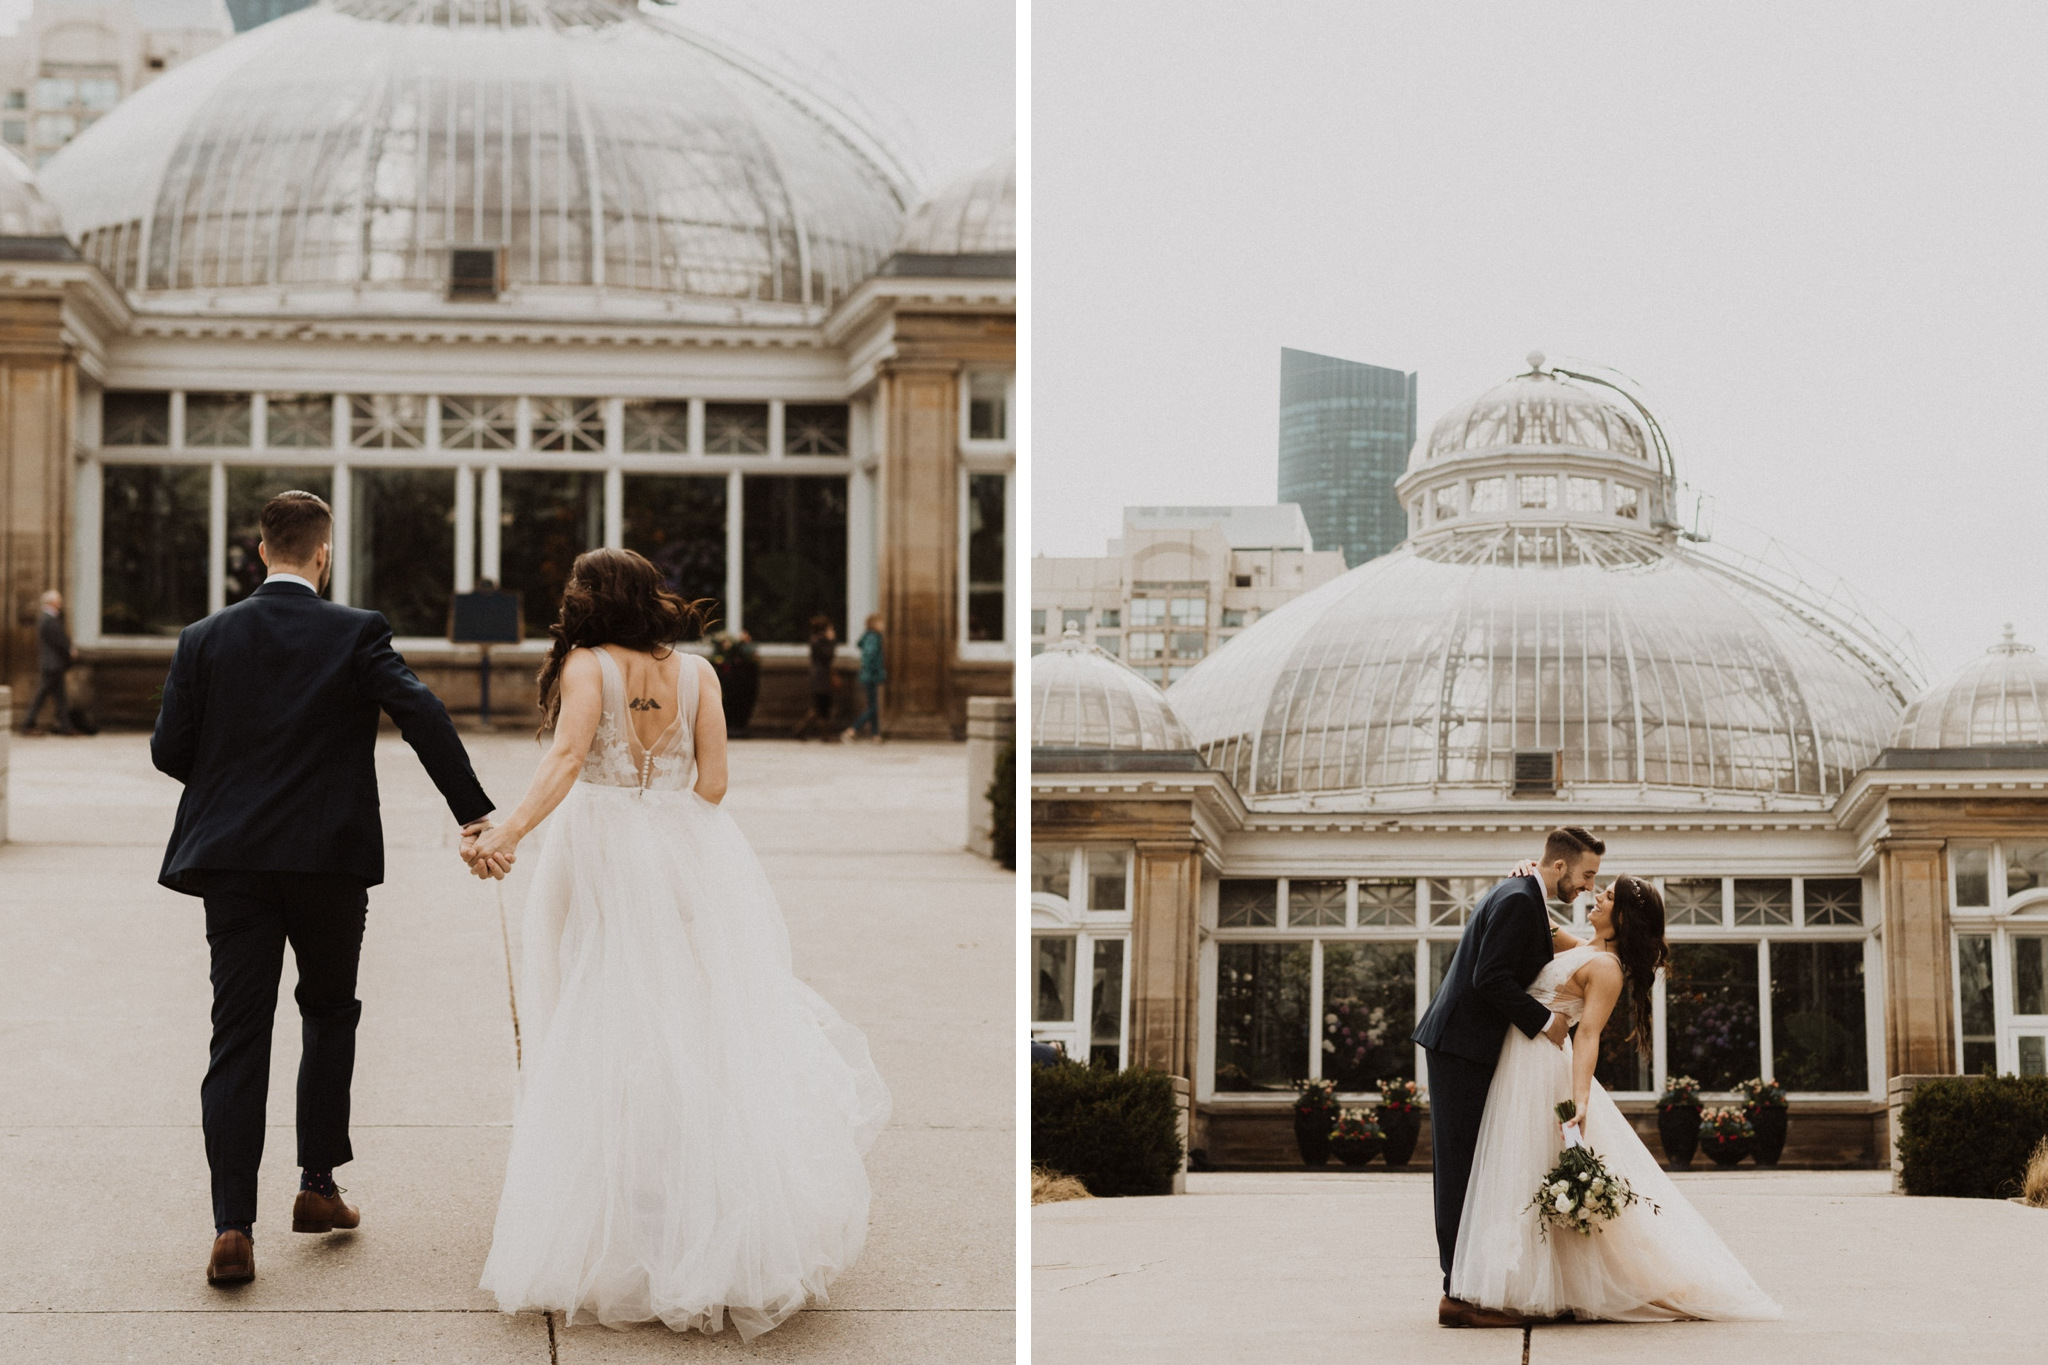 Greenhouse Elopement Allan Gardens Toronto - bride and groom in front of green house